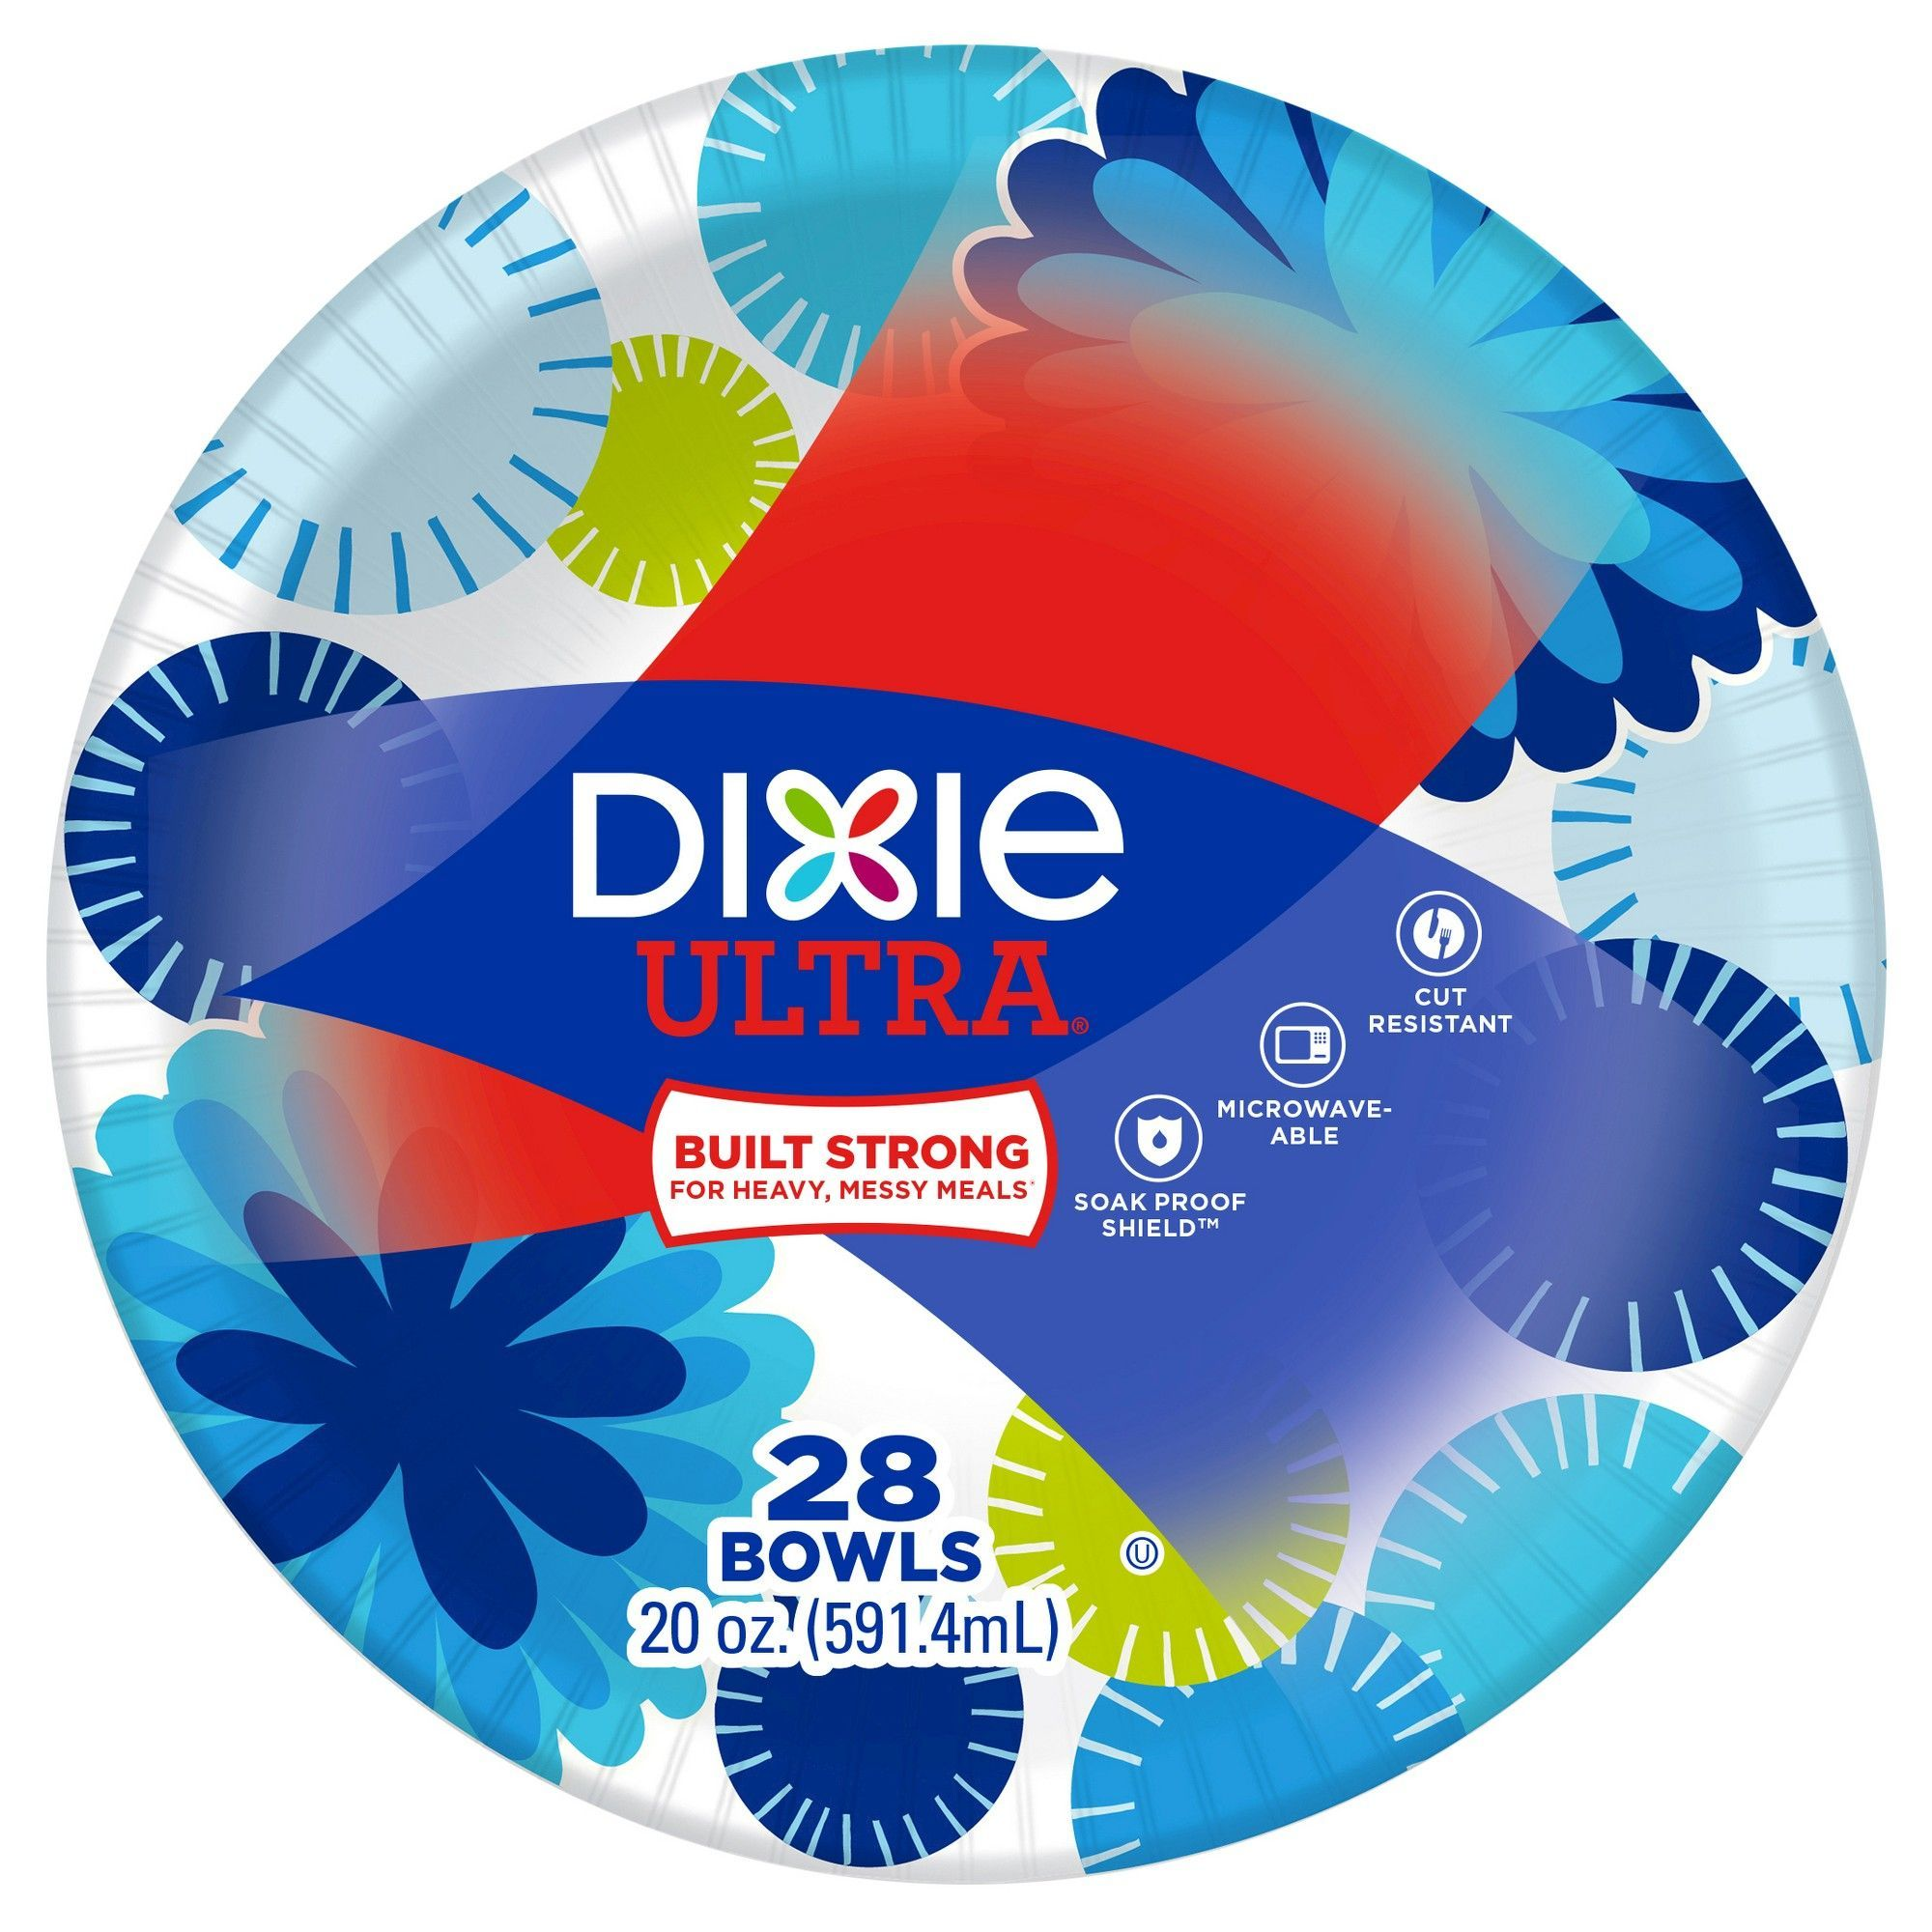 Dixie Ultra Dinner Paper Bowls 28ct/20oz Disposable